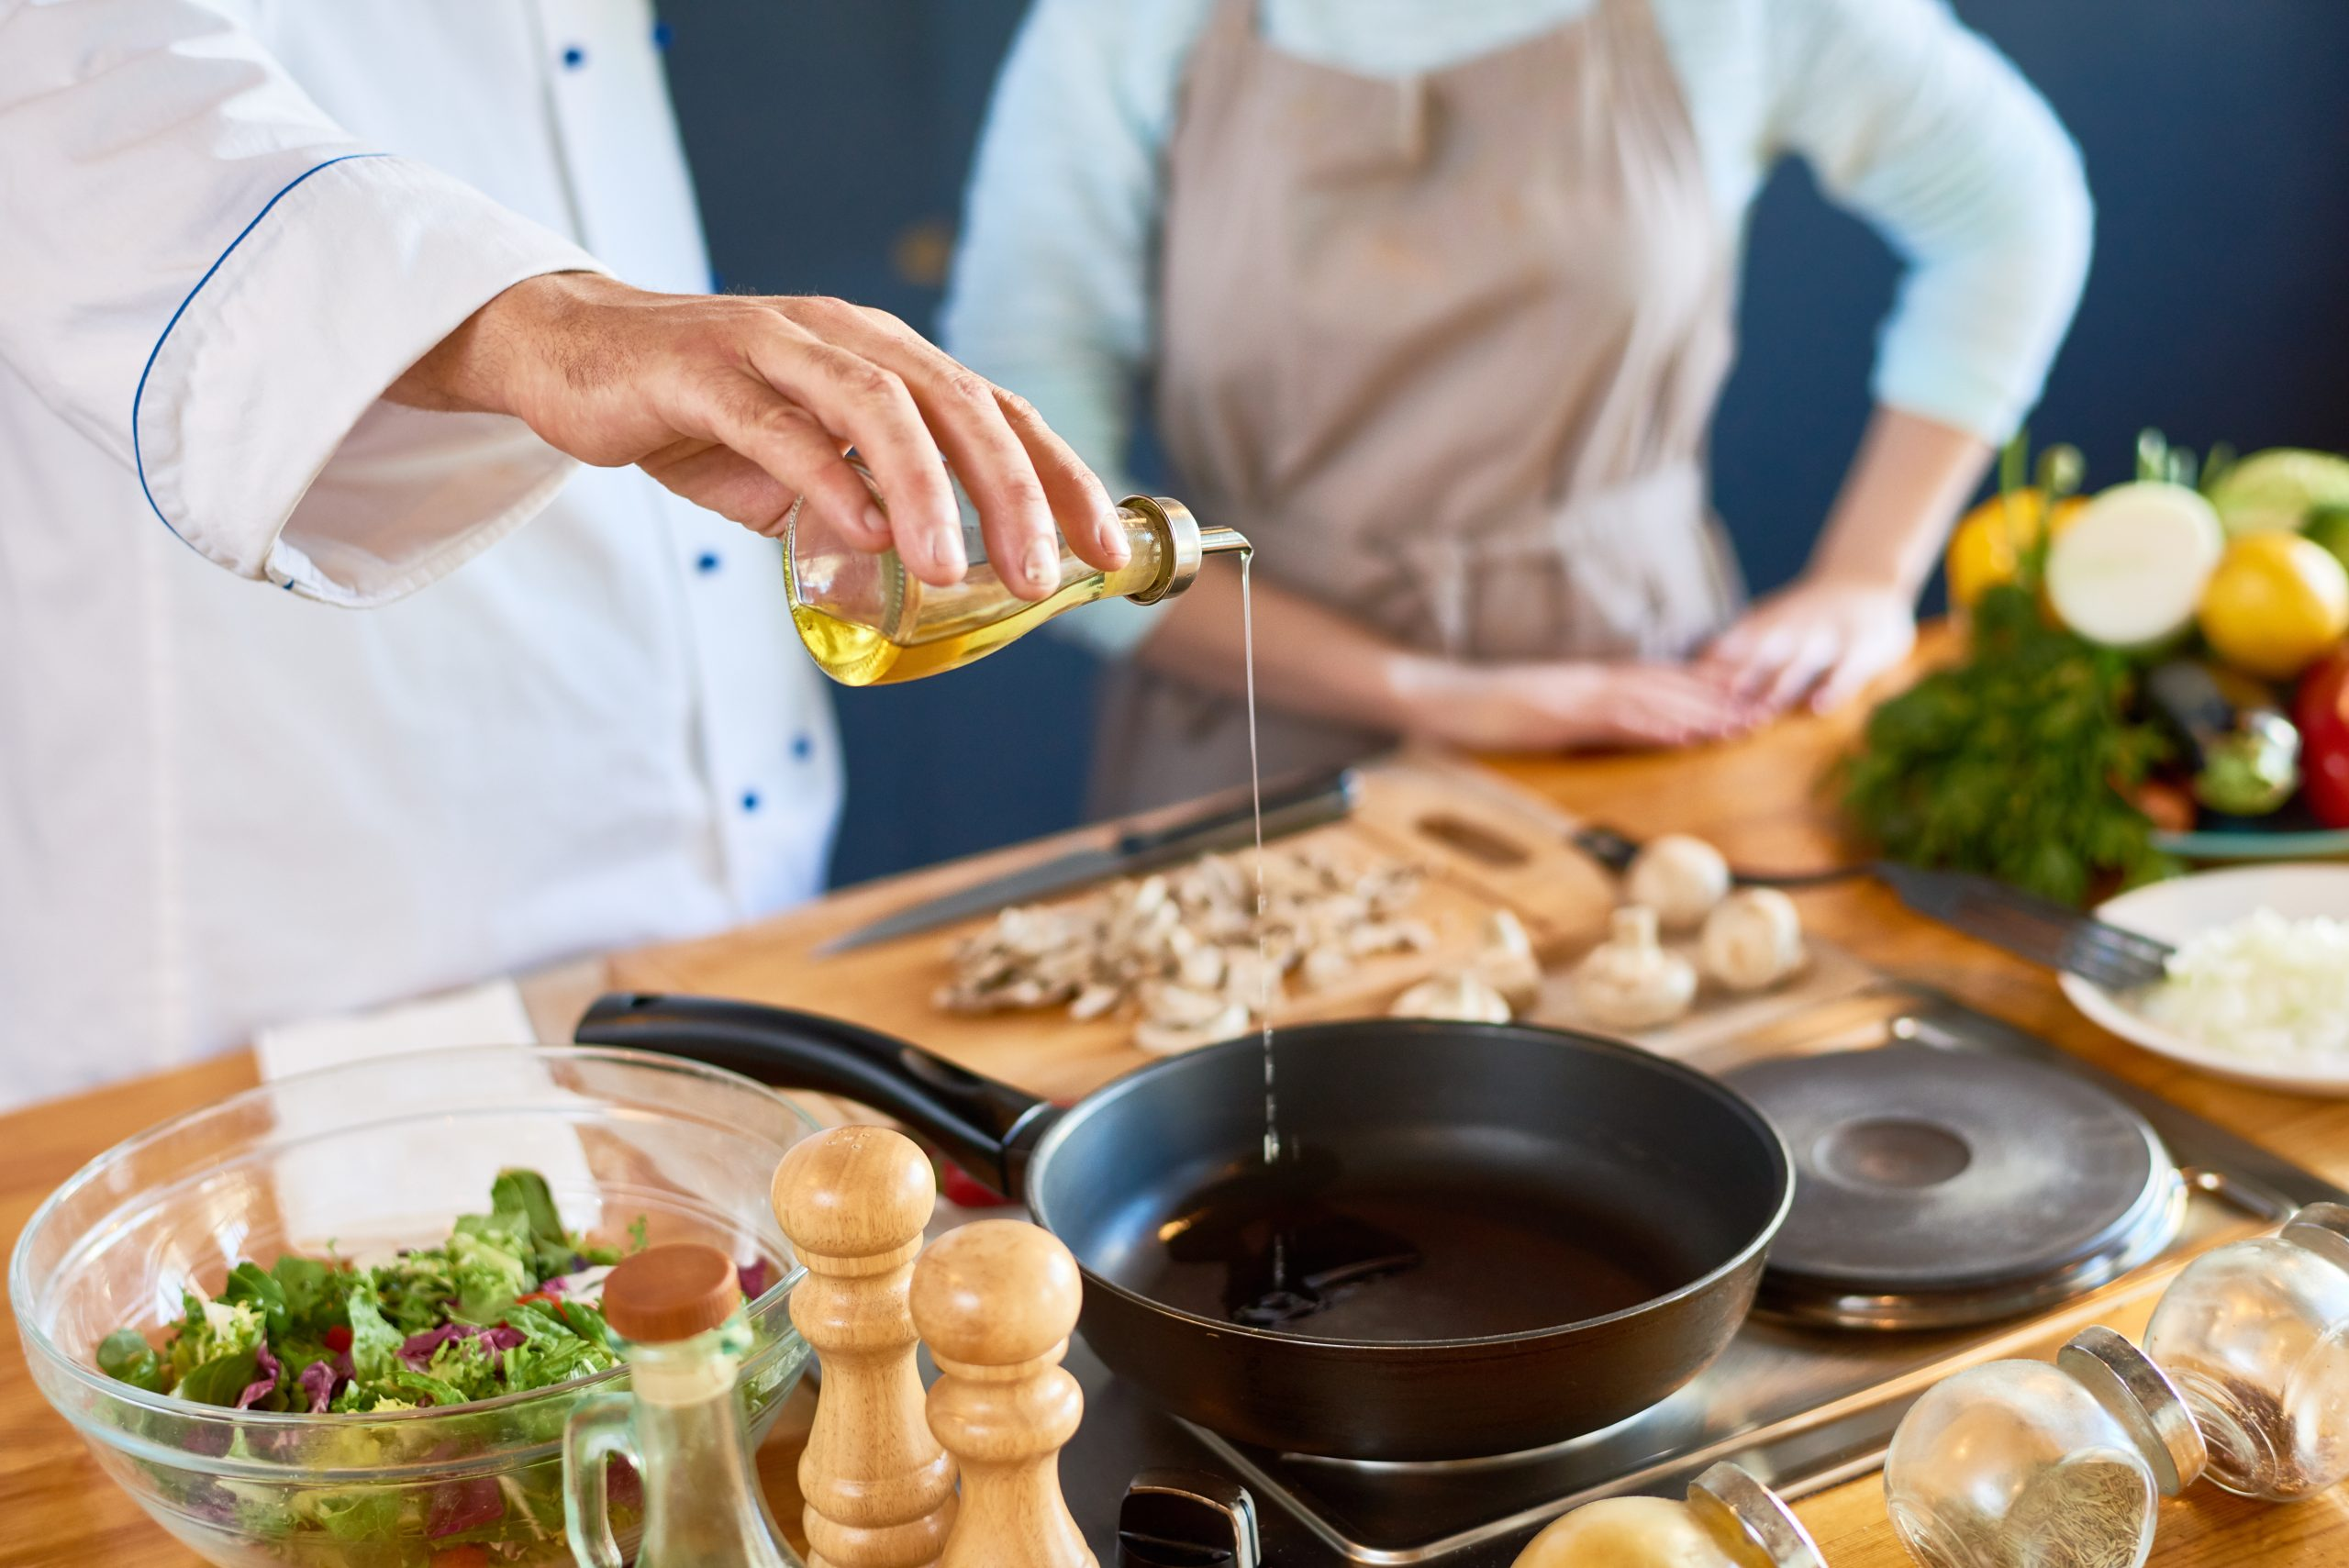 Chef pouring cooking oil on a pan